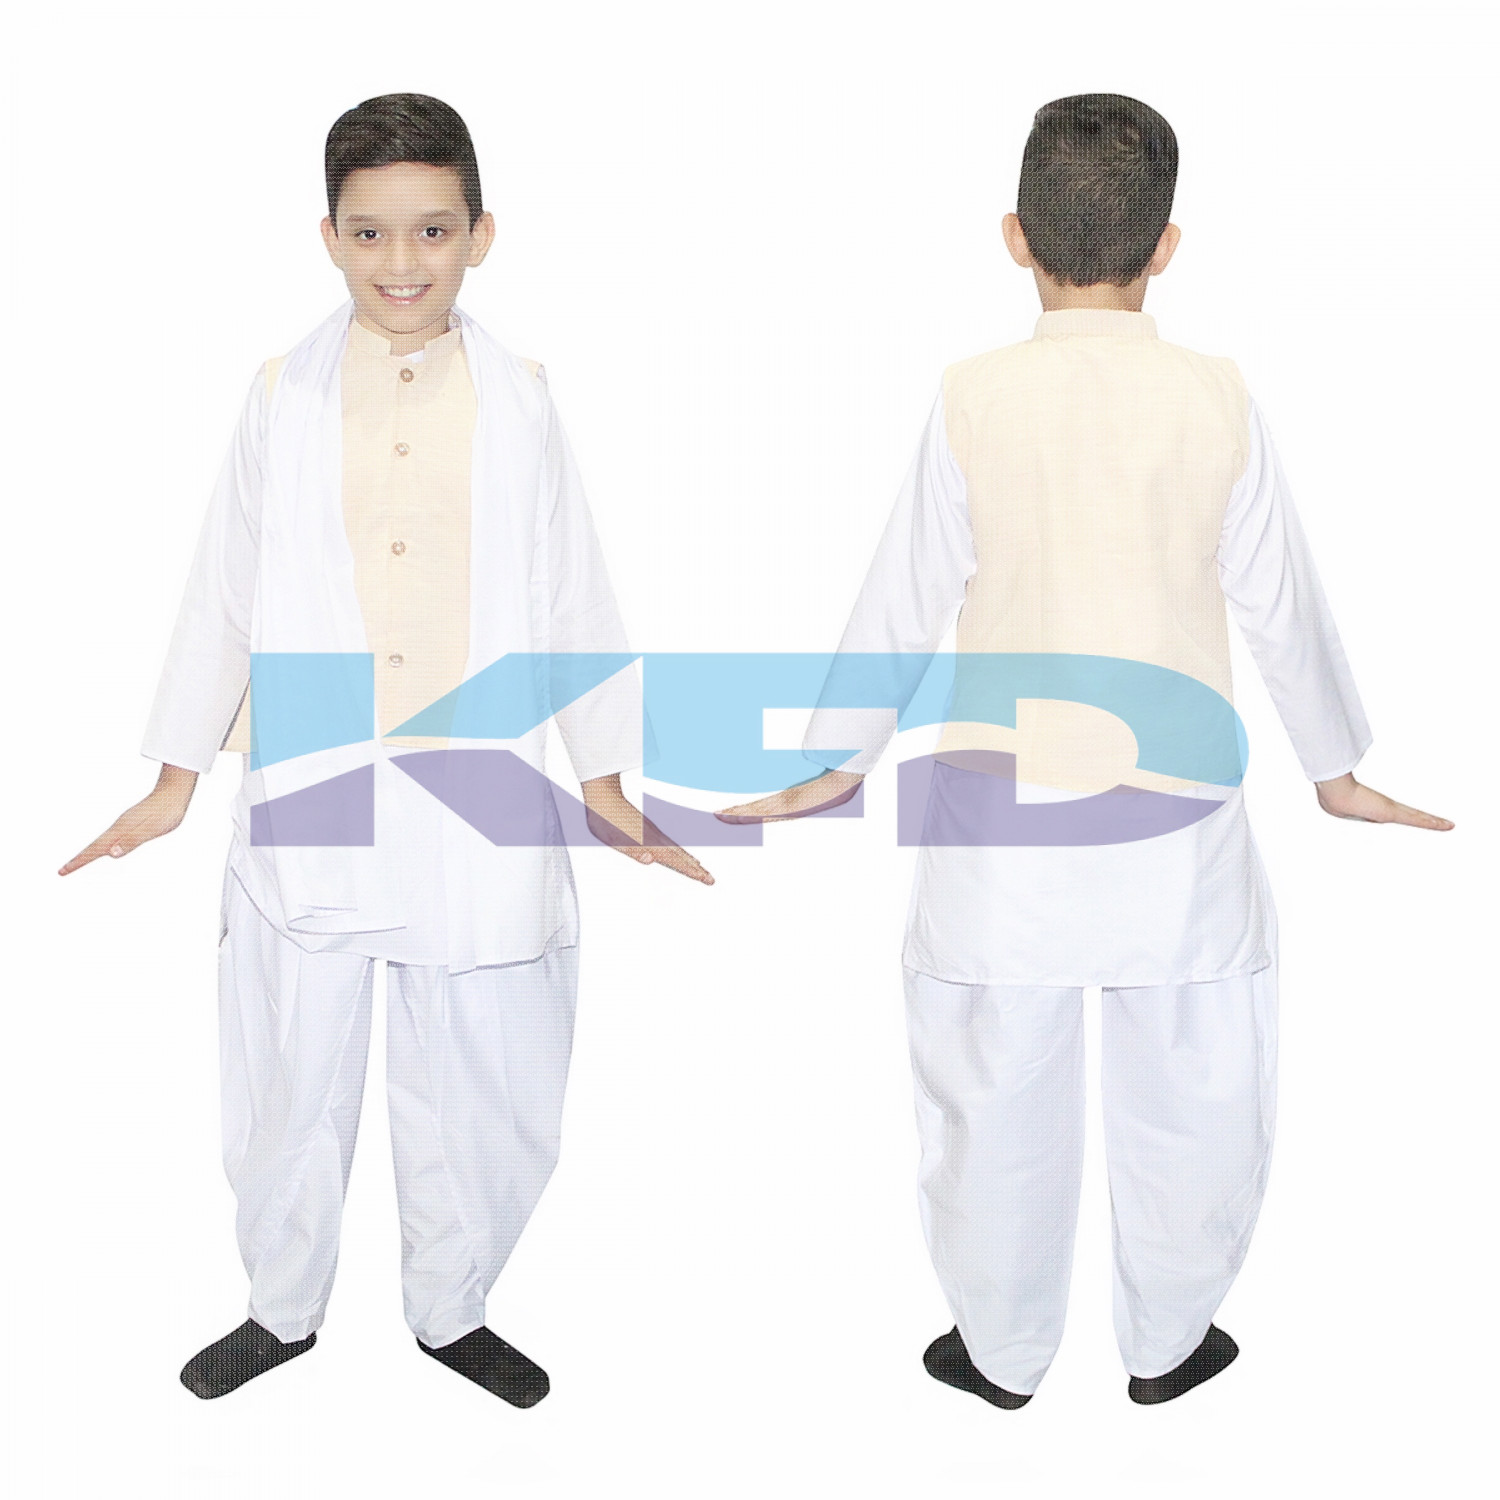 Sardar VallabhBhai Patel Costume For Kids/National Hero Fancy Dress/Politician Costume For Kids/School Annual function/Theme Party/Competition/Stage Shows Dress